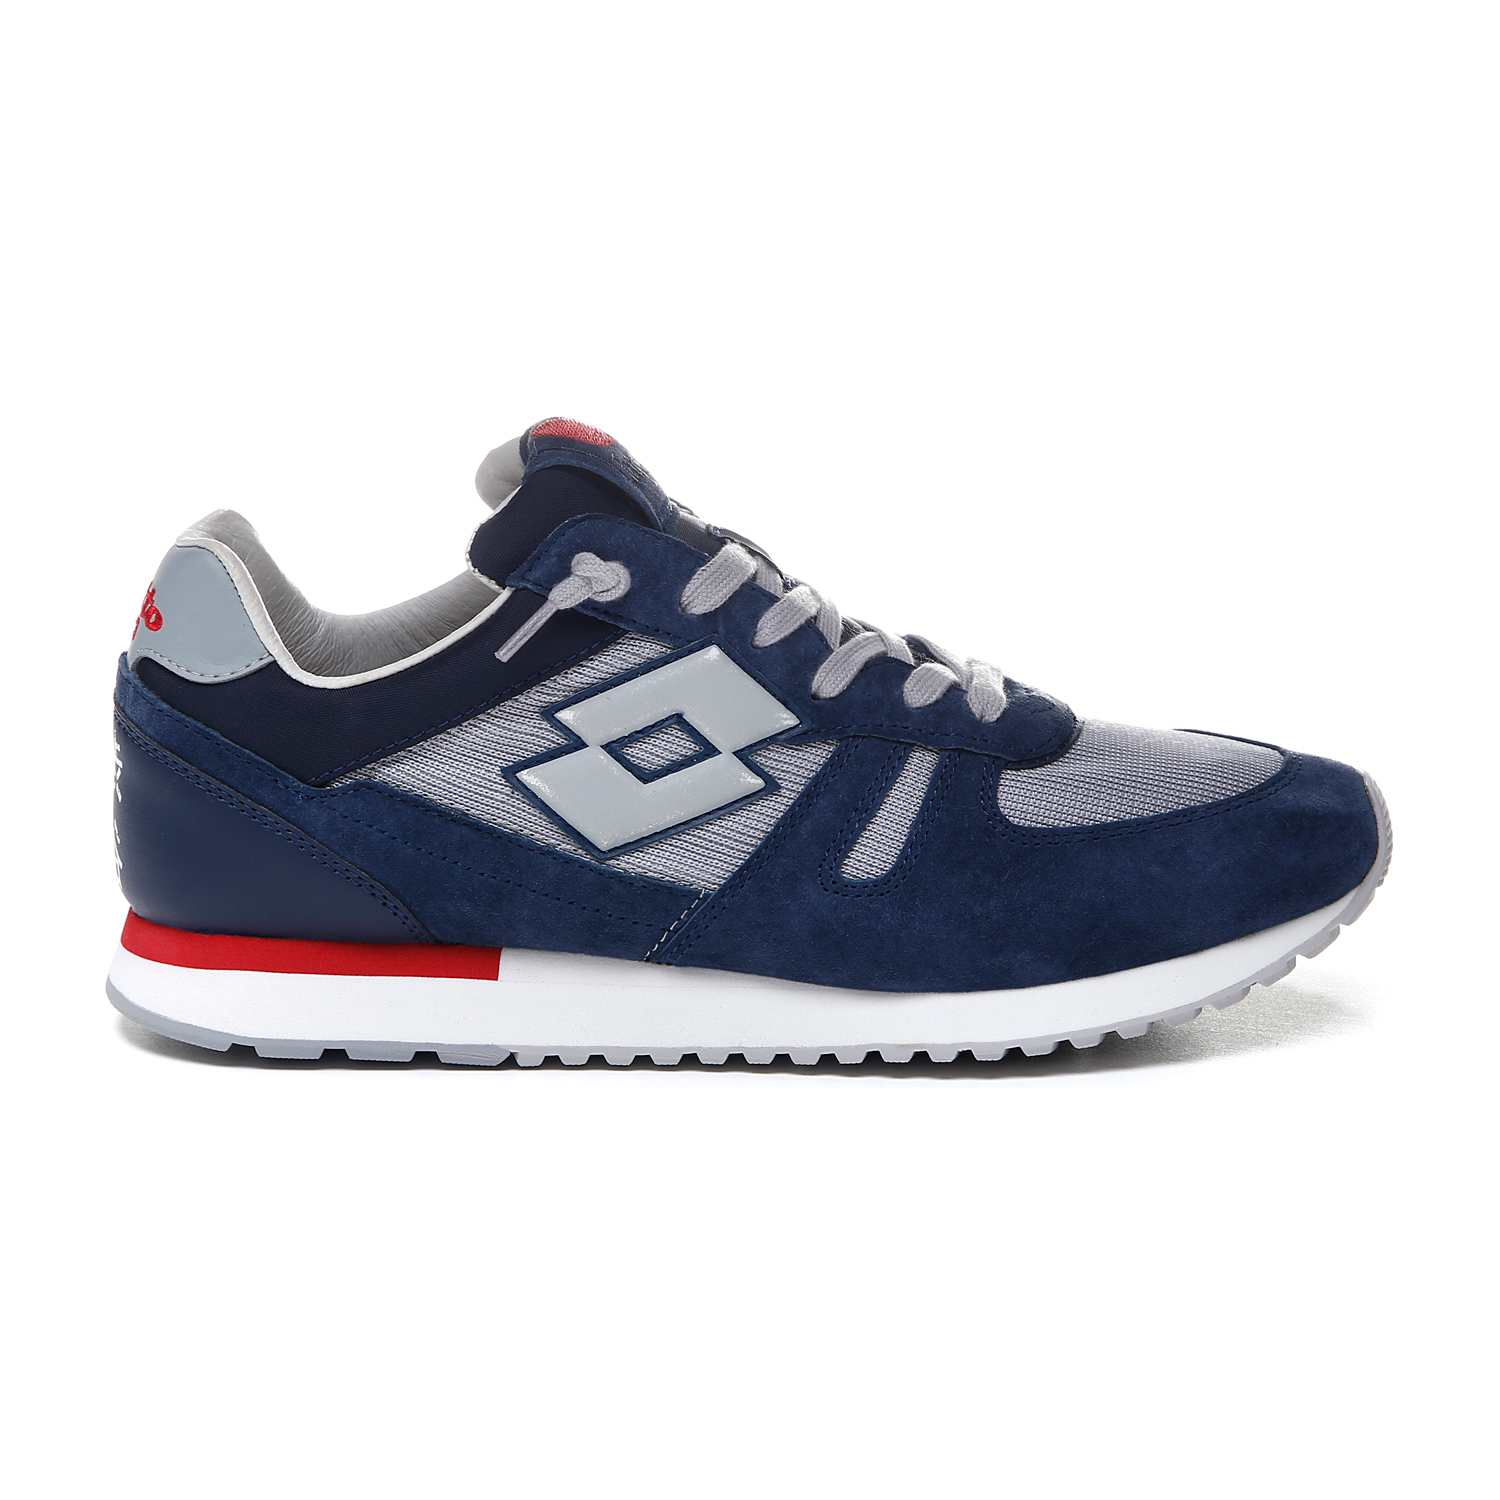 50f59faca2f Lotto Sport Italia - Footwear, clothing and accessories for sport ...